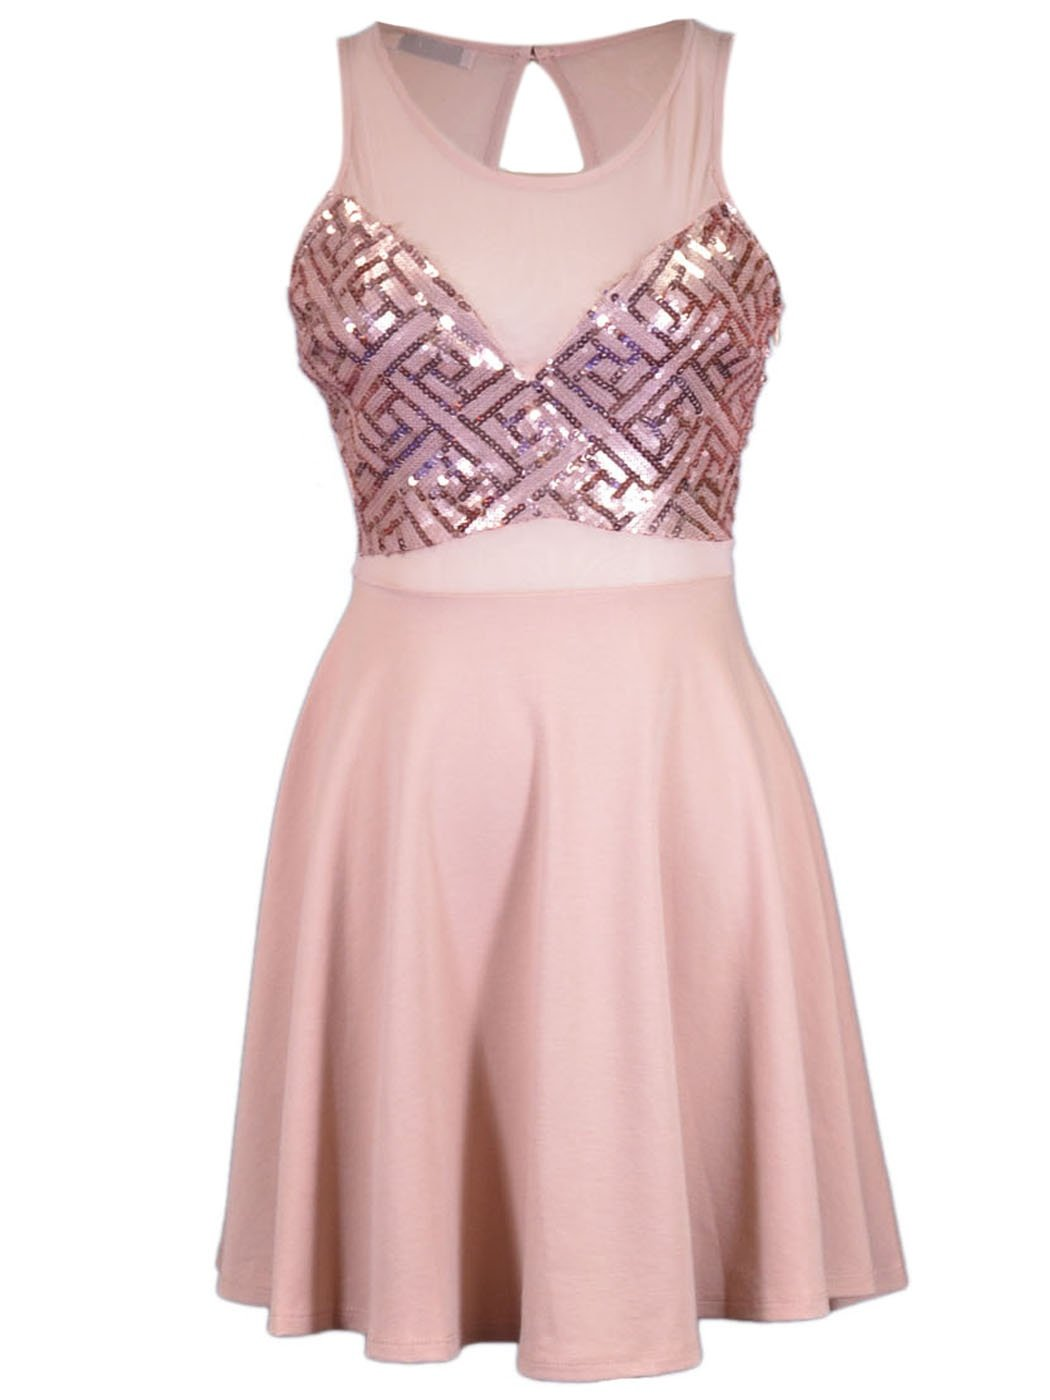 Lush Brand Pink Geometric Sequin Pattern Sheer Yoke Key Hole Detail Dress